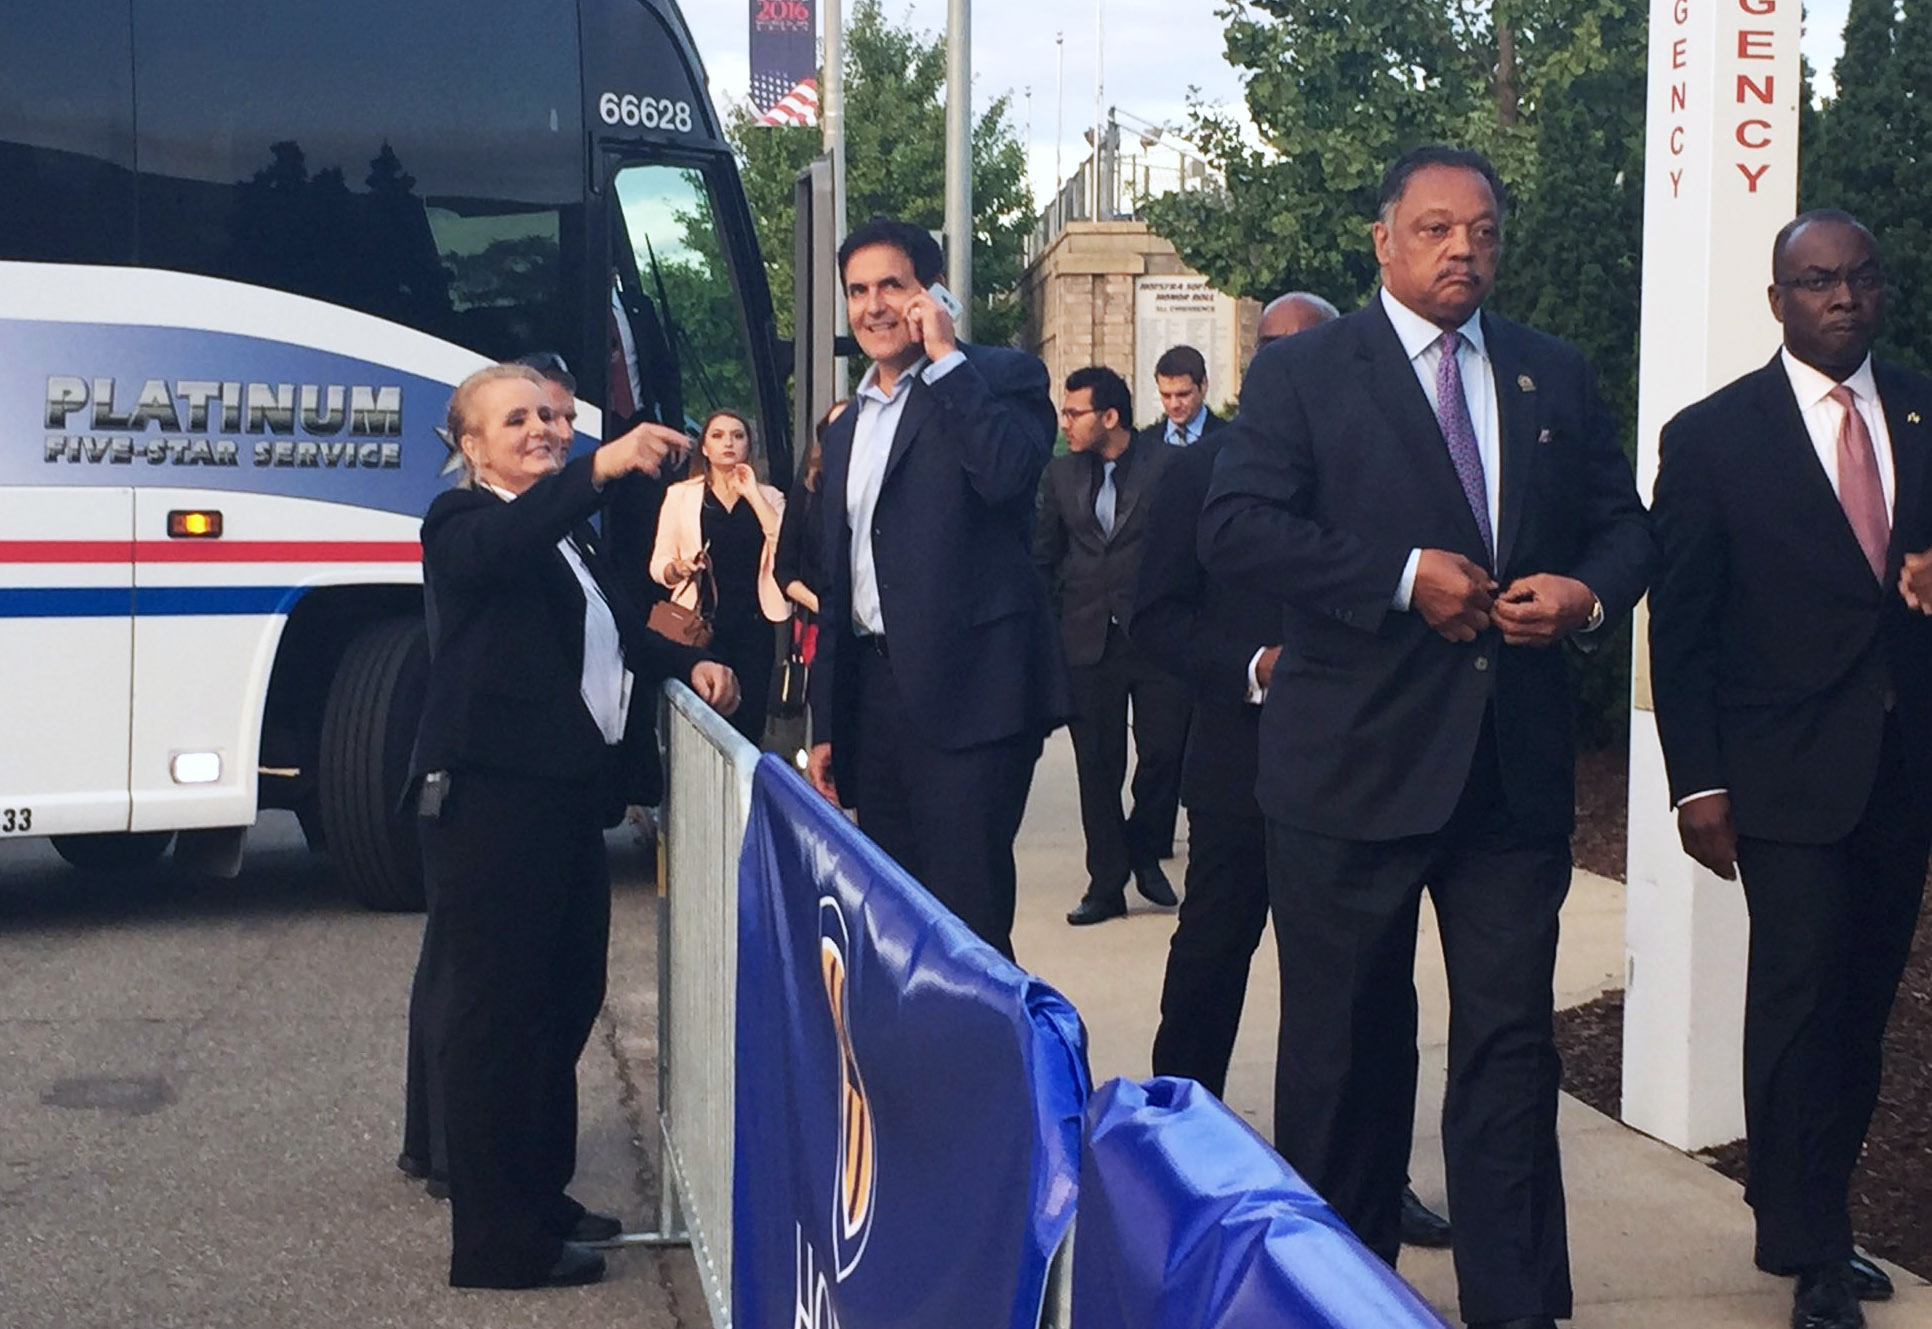 At the first presidential debate, billionaire Mark Cuban exits a bus at Hofstra University alongside Jesse Jackson (Photo: Twitter/Jennifer Griffin)